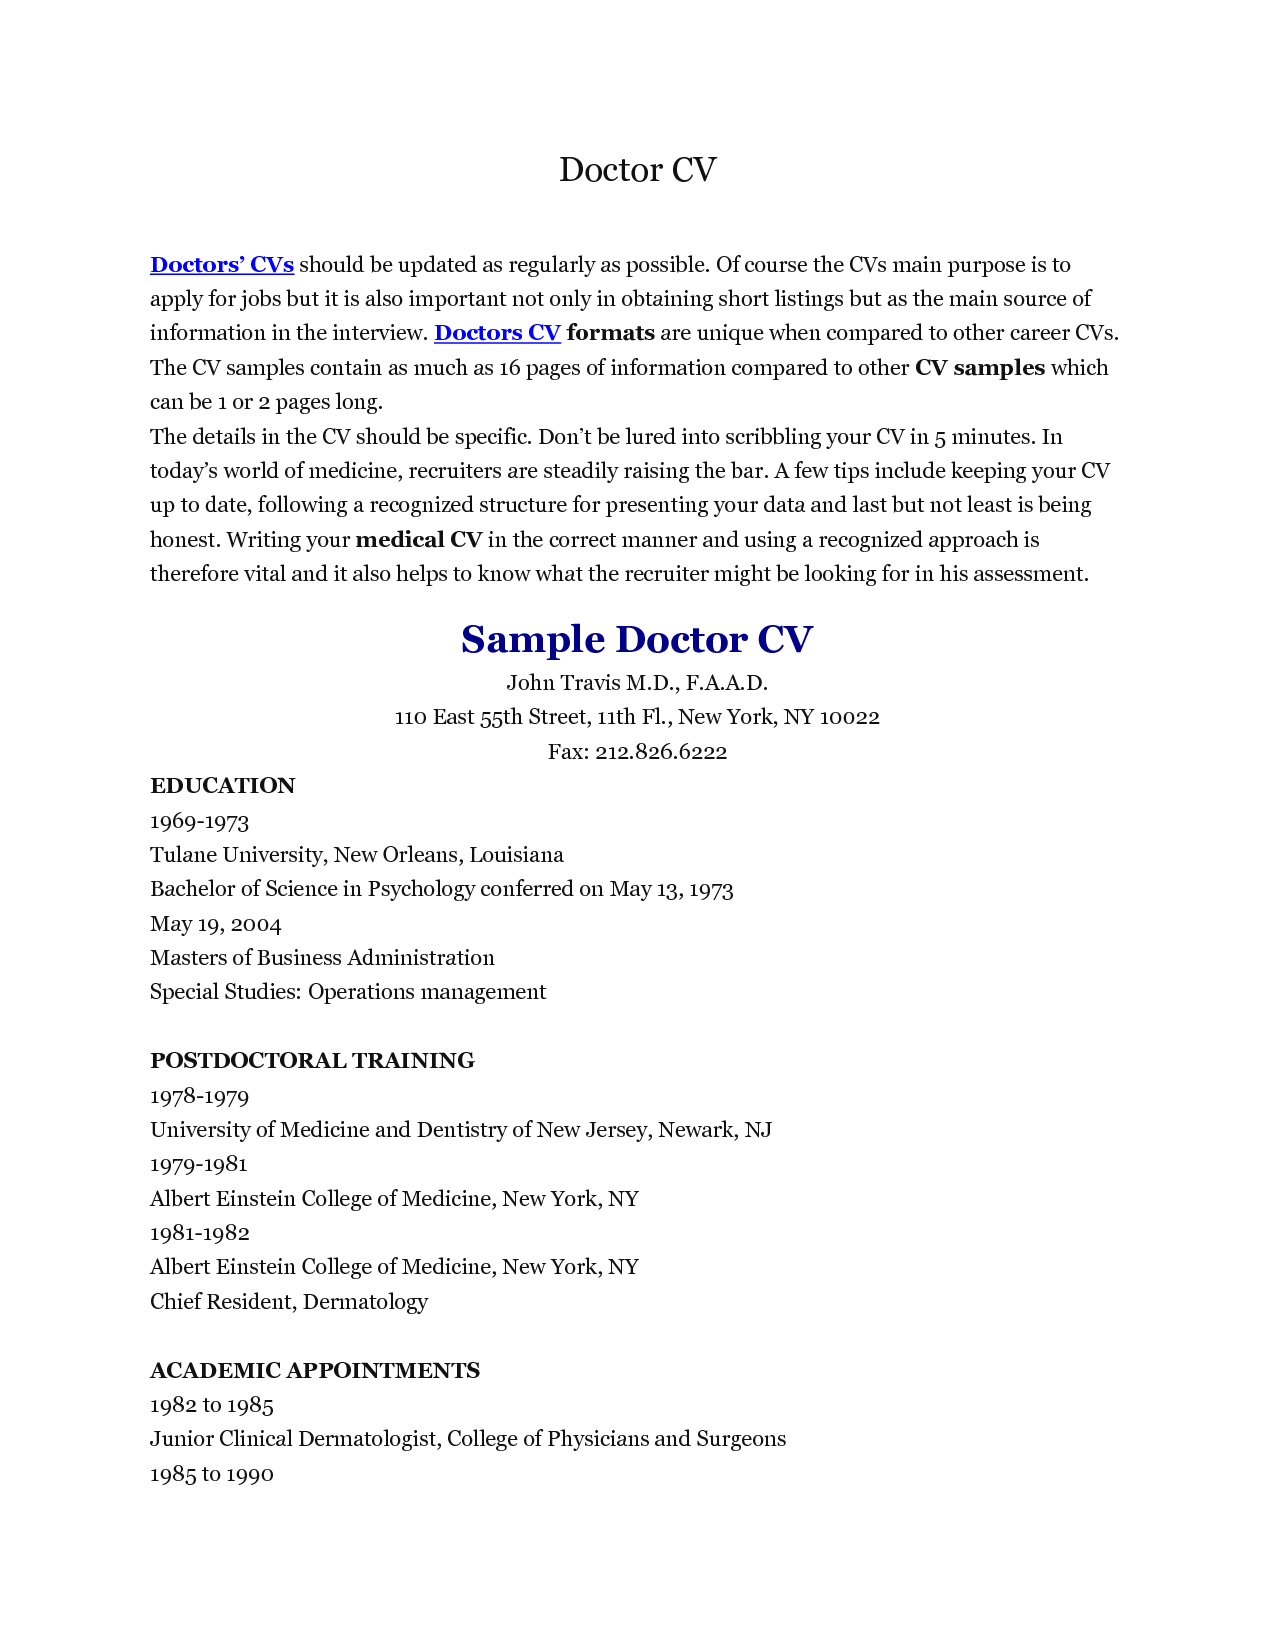 Doctor Resume Template Pinjobresume On Resume Career Termplate Free  Pinterest